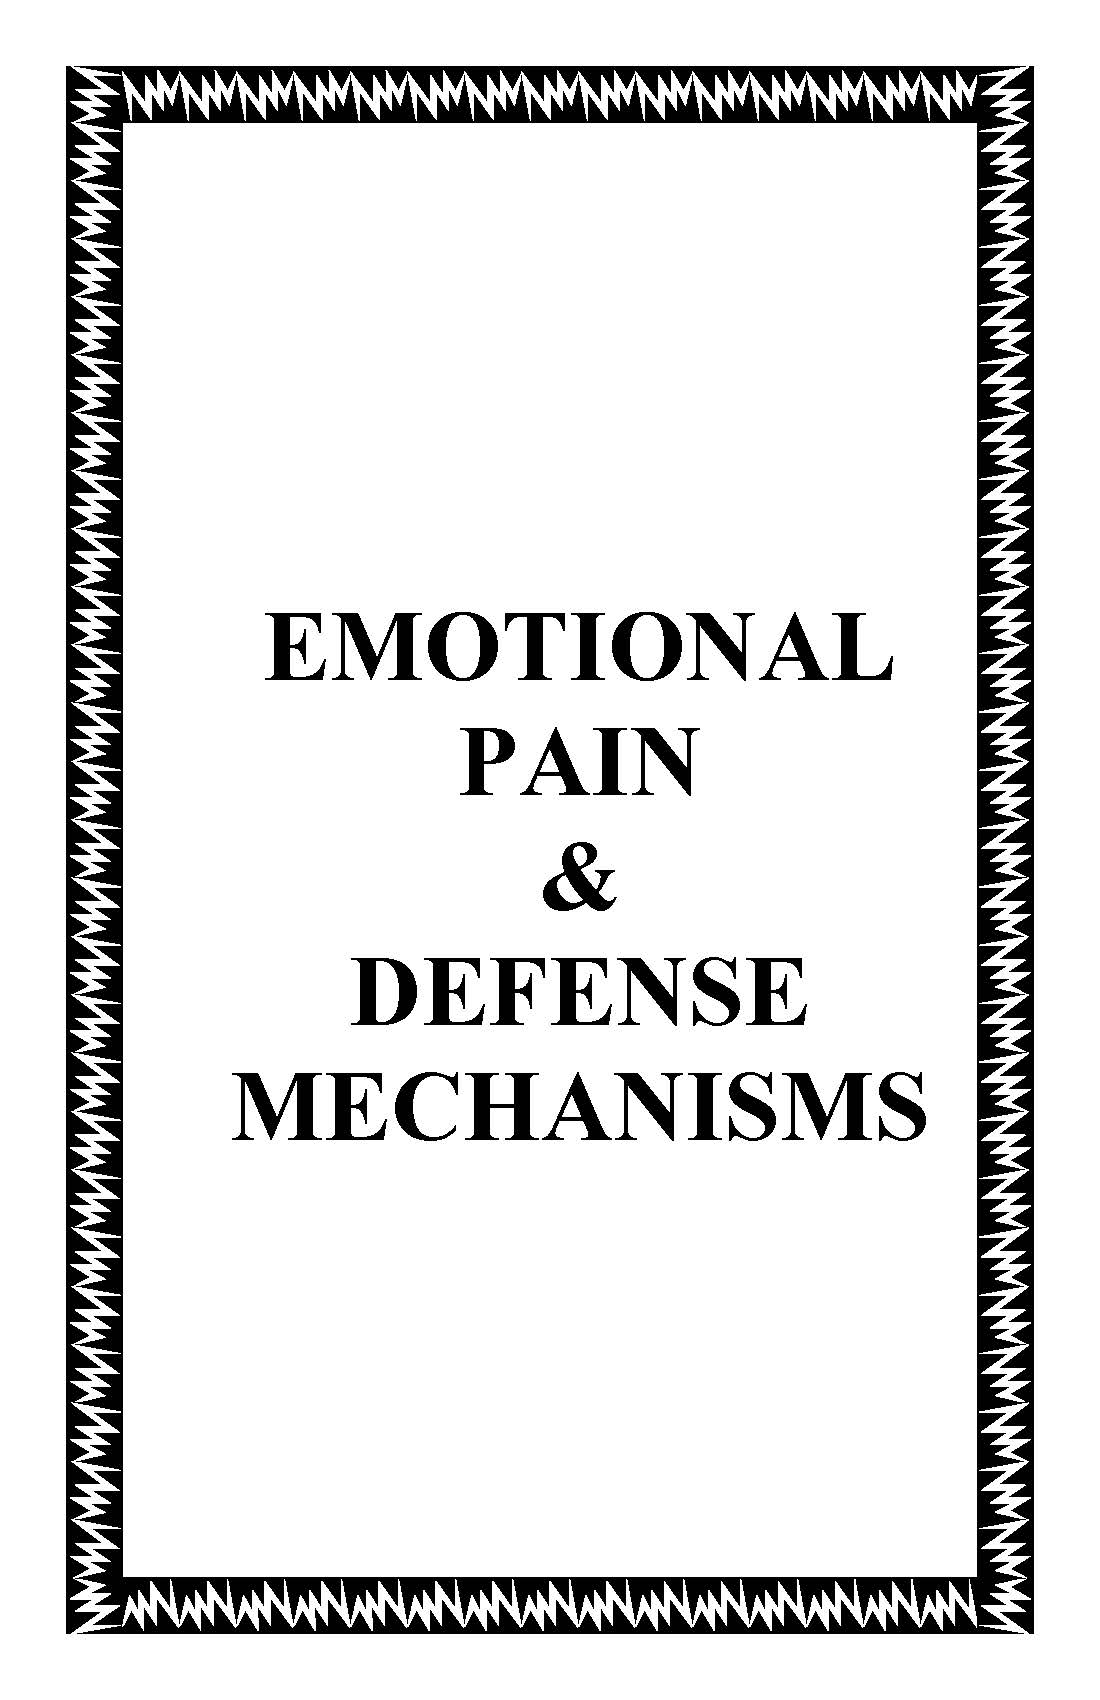 EmotionalPainAndDefenseMechanisms.LEM.160.01.050516.Cover